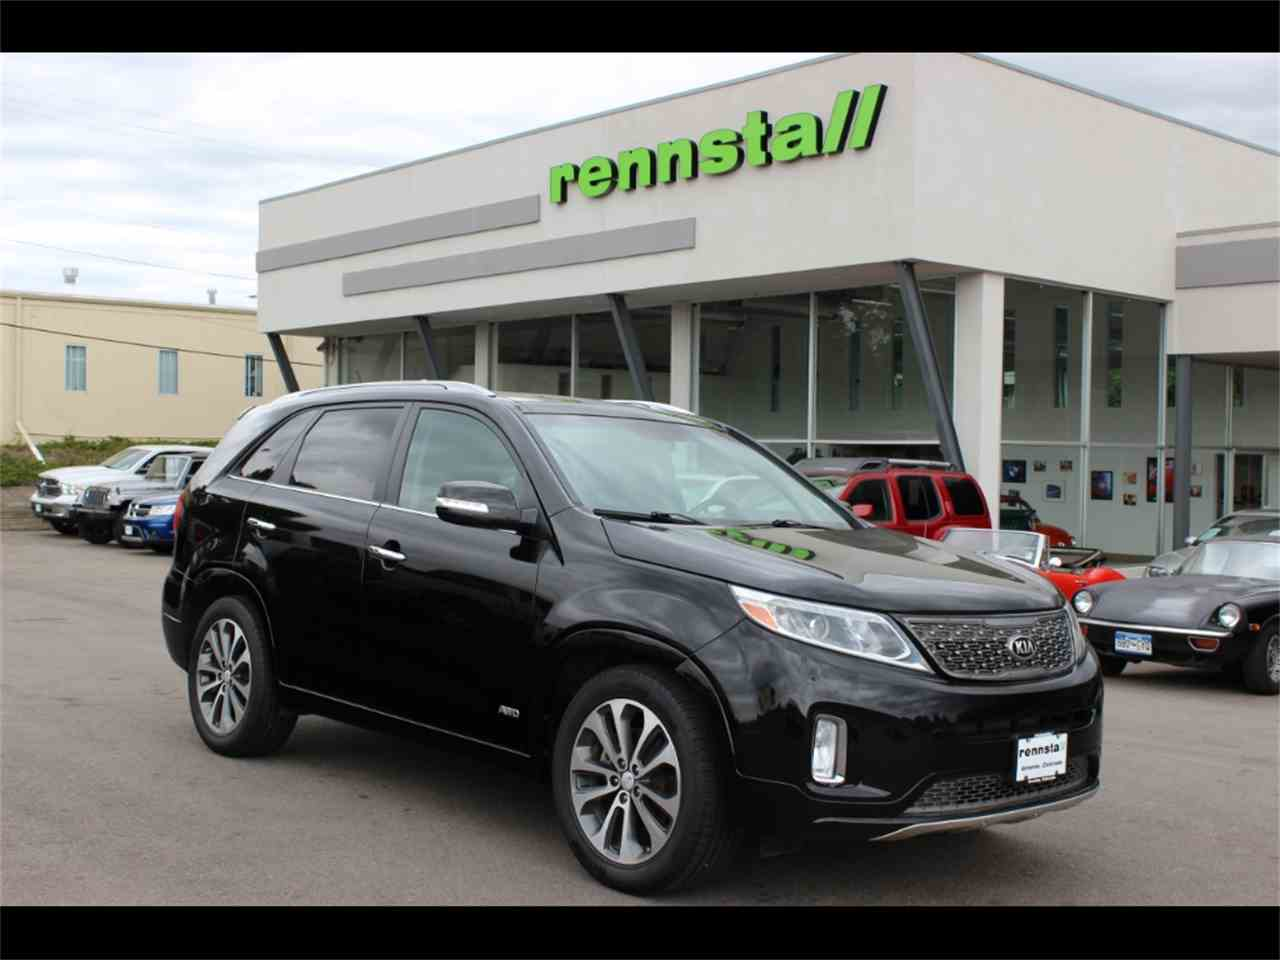 Large Picture of 2014 Kia Sorento located in Colorado - $21,888.00 Offered by Conquest Classic Cars - LWDR